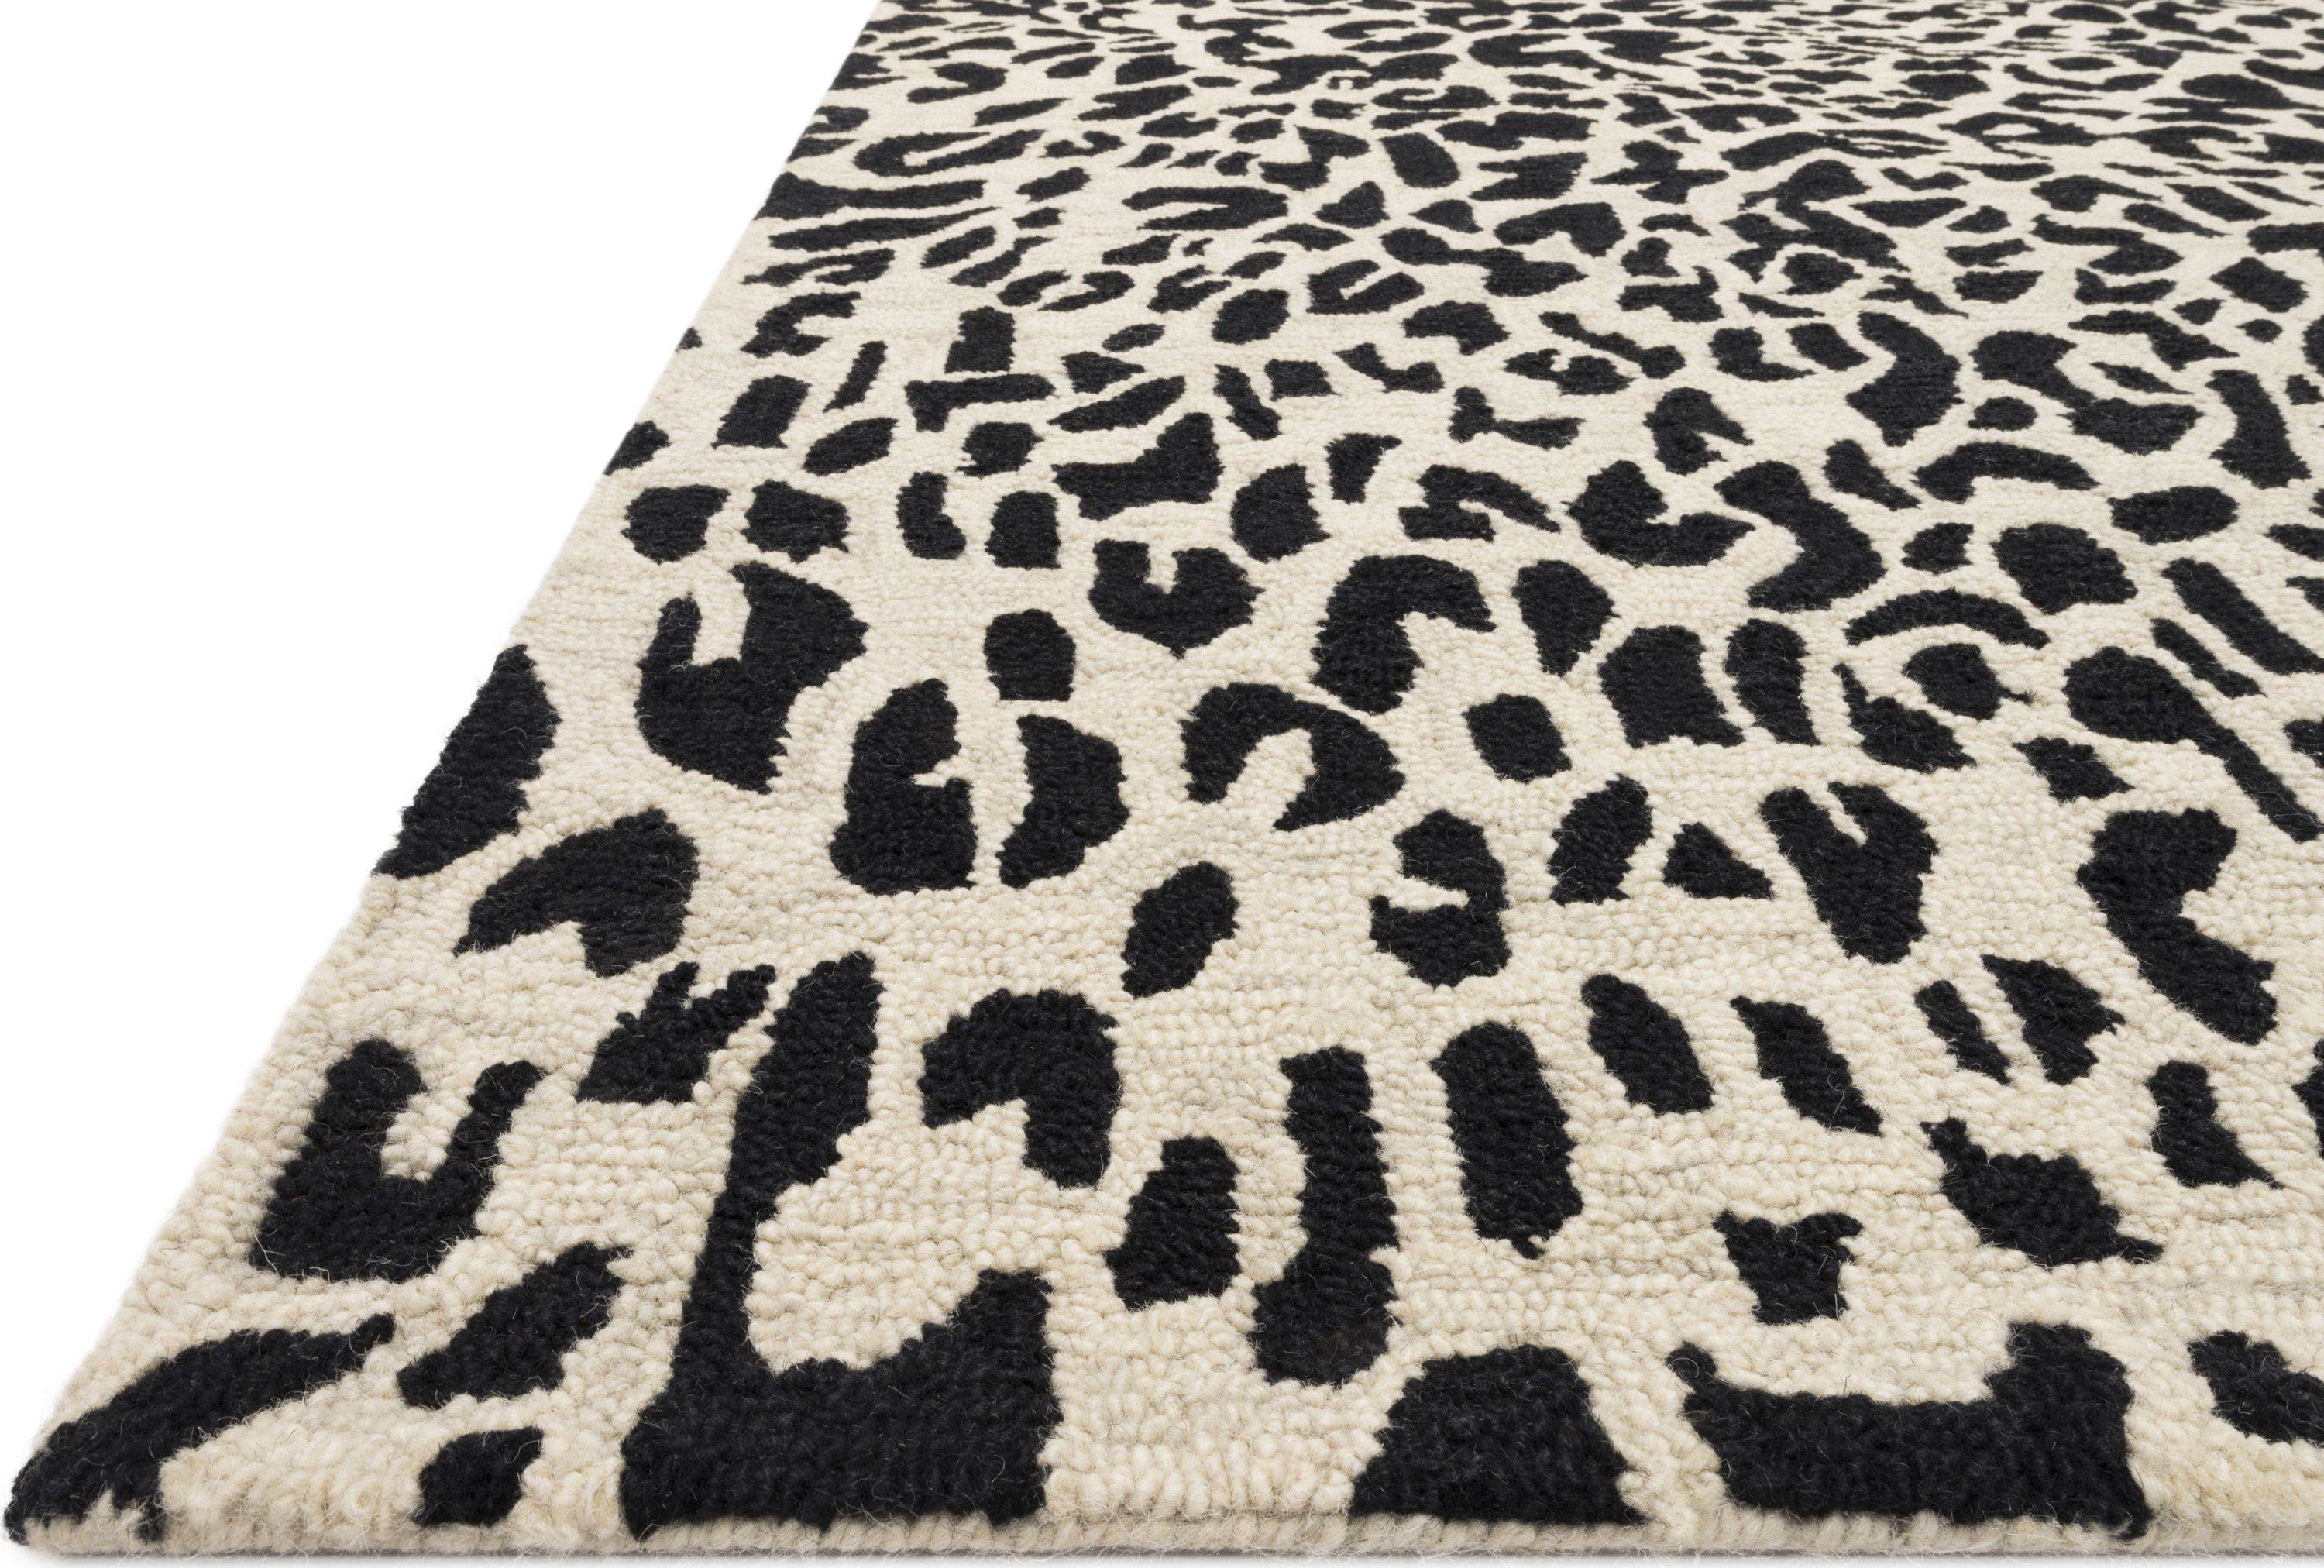 Masai Leopard Rug Color Black Ivory Size 1 6 Square In 2020 Area Rugs Leopard Rug